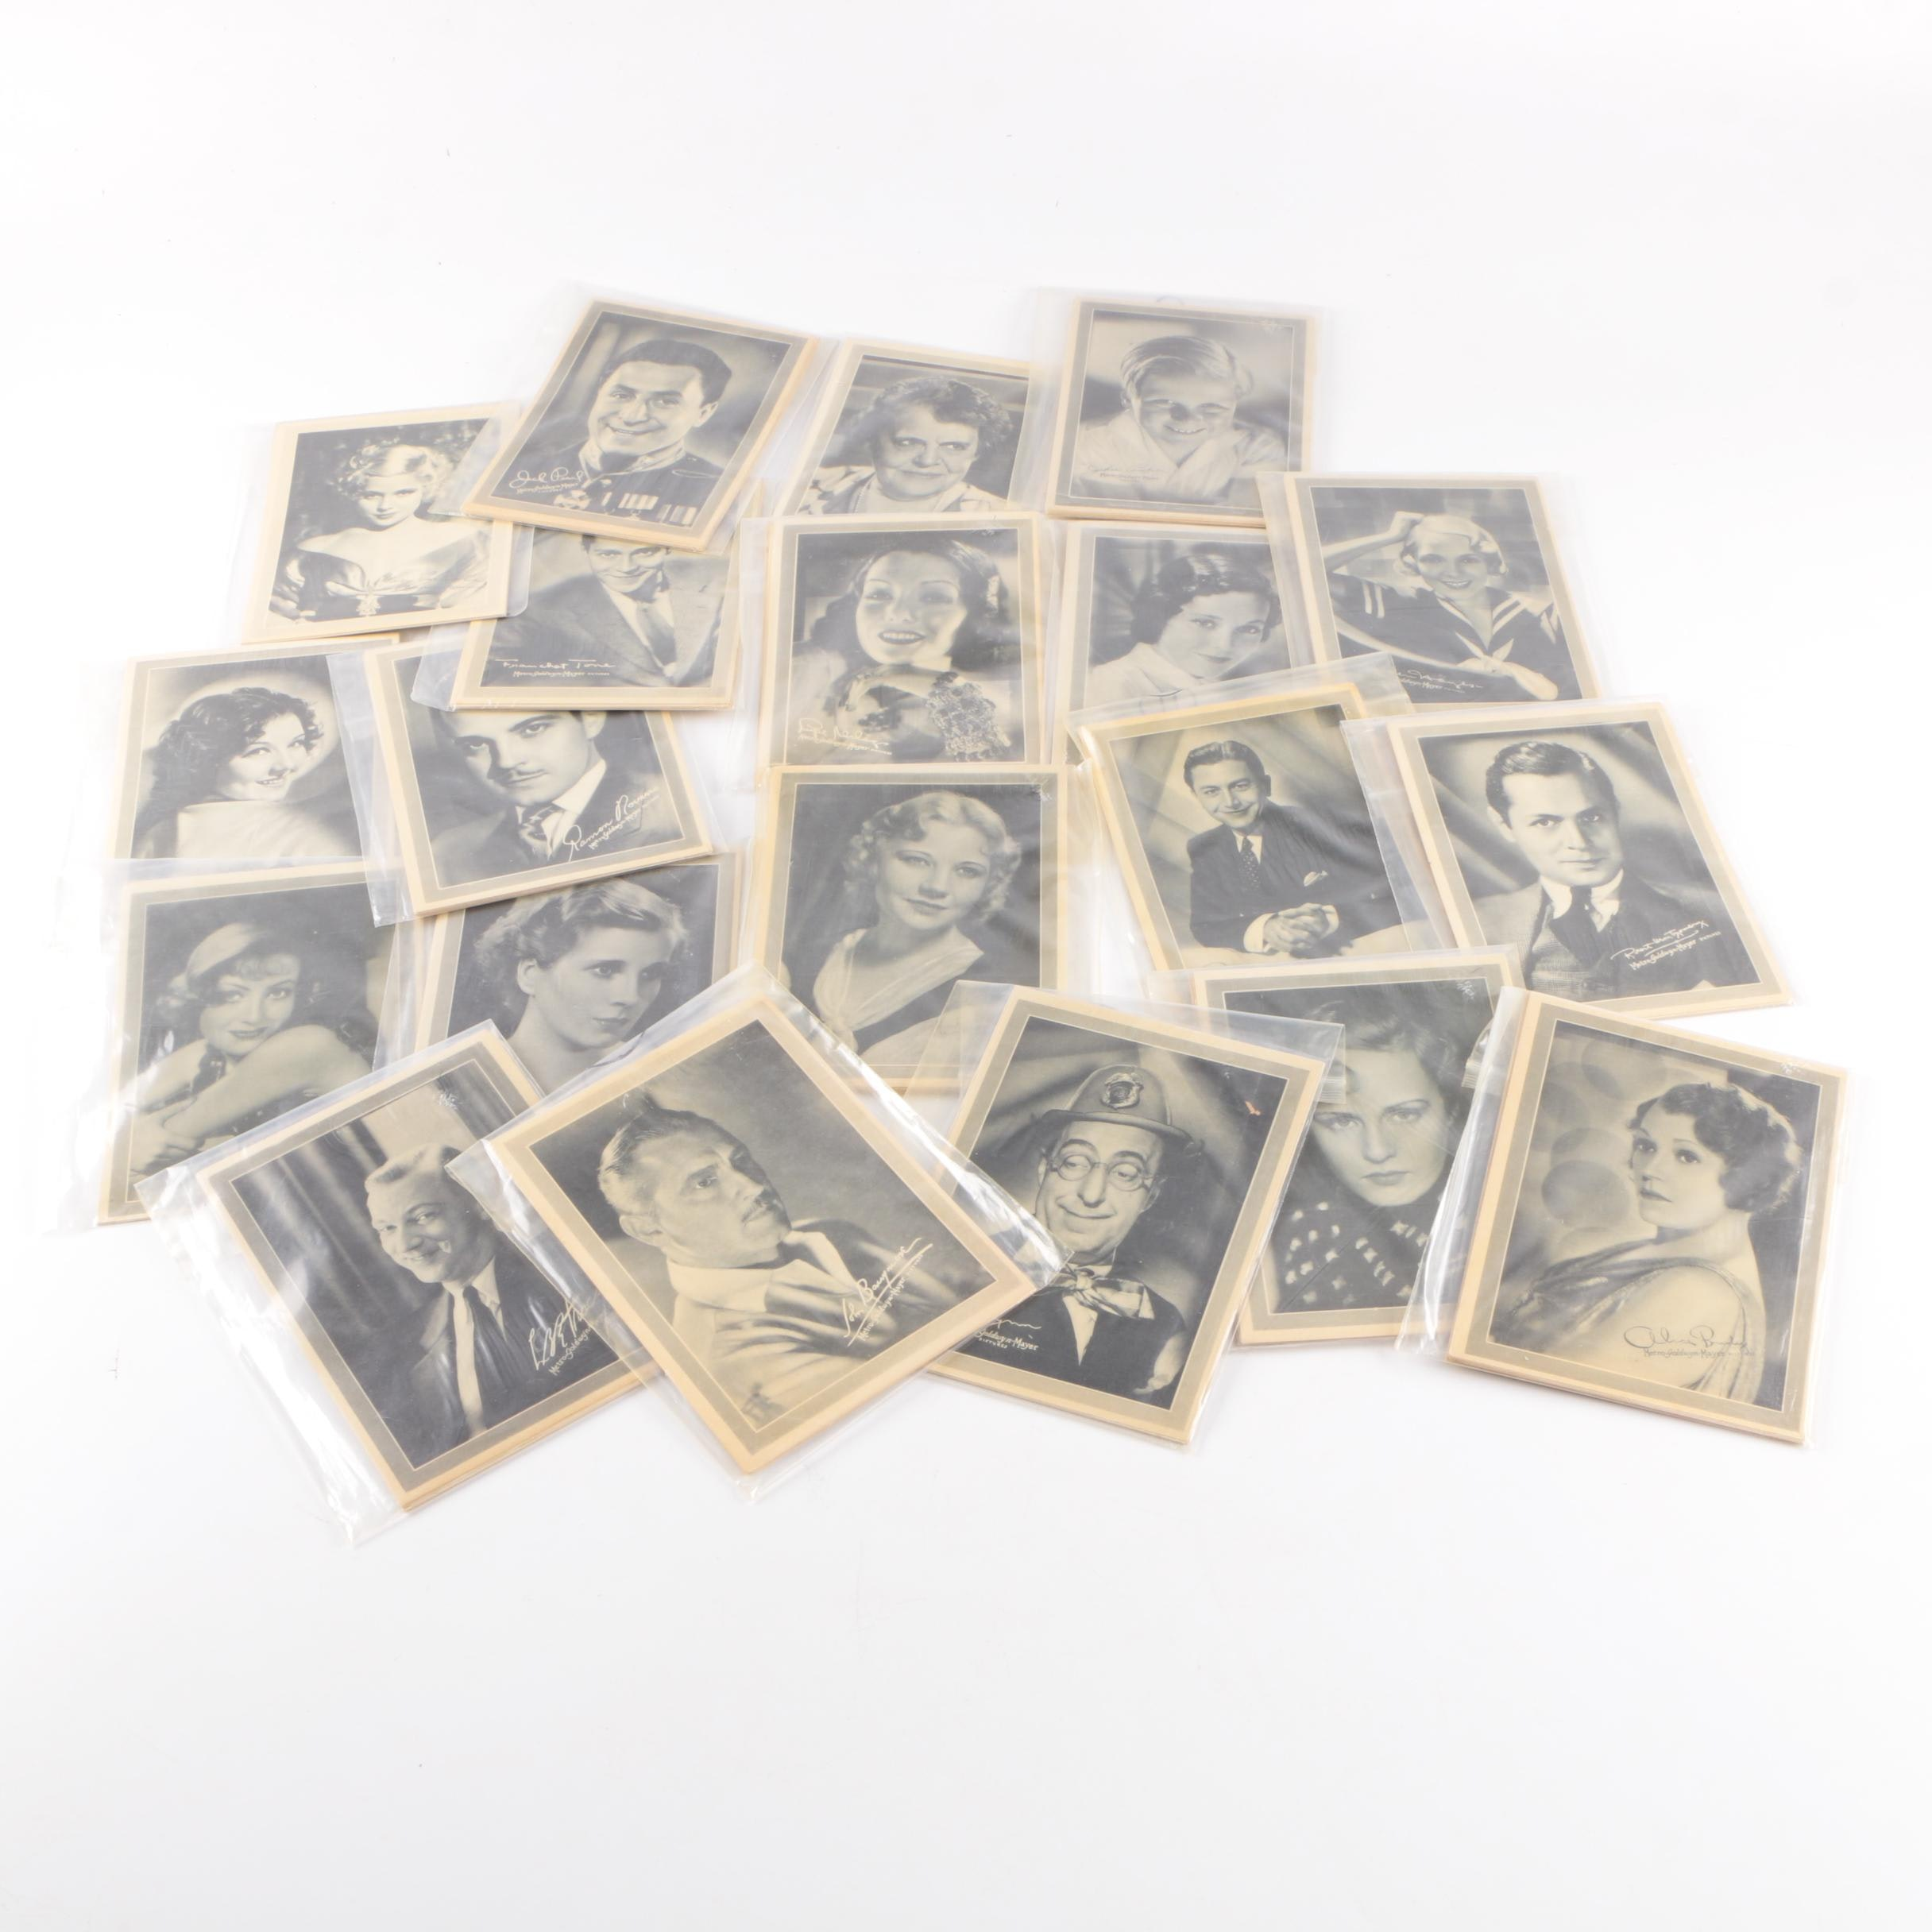 1933 Lux Toilet Soap Movie Star Portraits Including Joan Crawford and Lupe Vélez